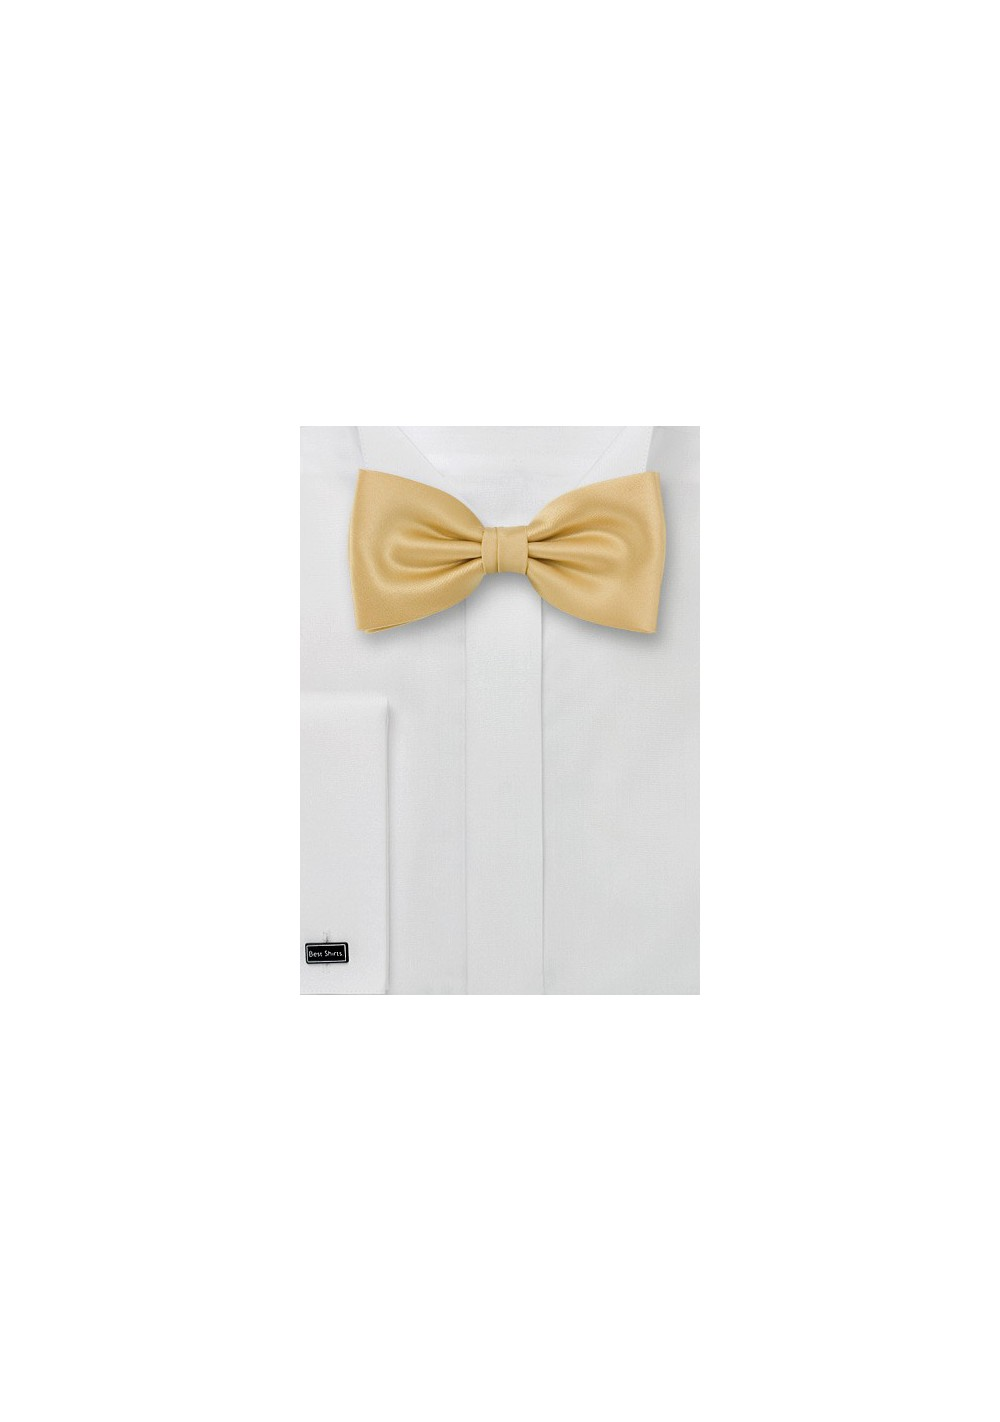 Bow ties  -  Solid color gold/yellow bow-tie